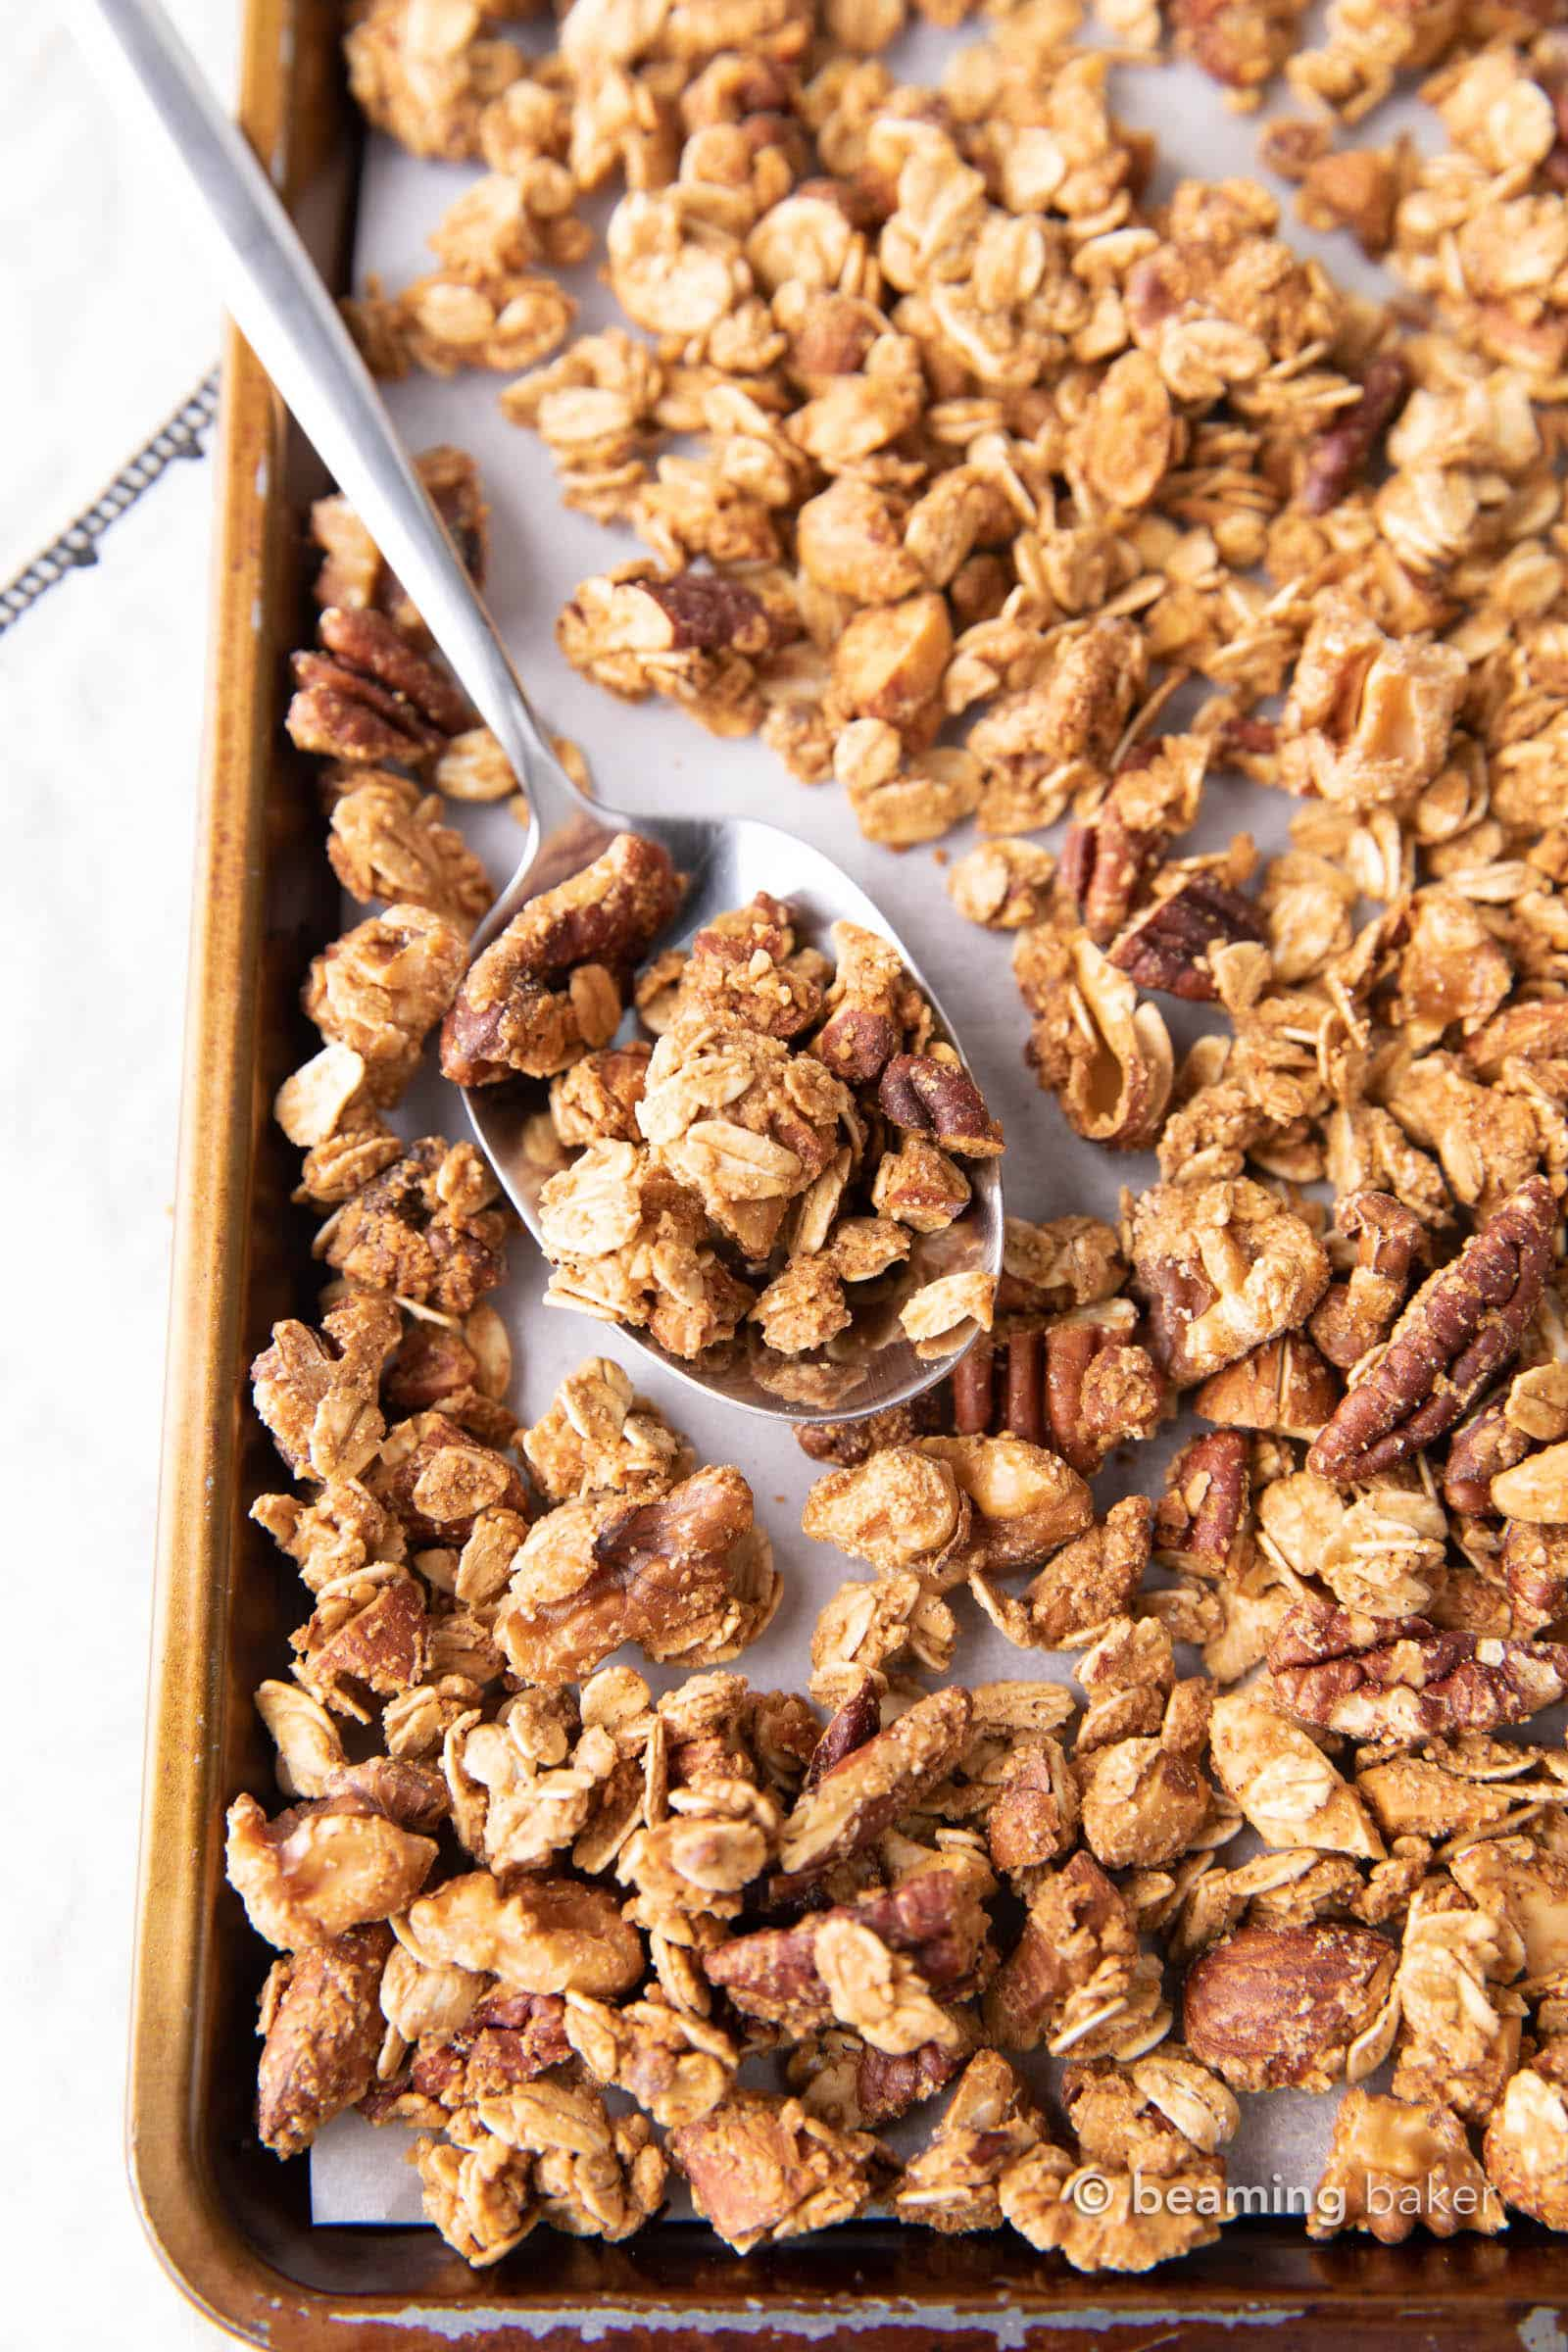 Gluten Free Granola: this 4 ingredient vegan granola recipe is prep'd in 5 minutes! The best GF granola: crunchy clusters, healthy ingredients & great flavor! #GlutenFree #Granola #Vegan #GF | Recipe at BeamingBaker.com